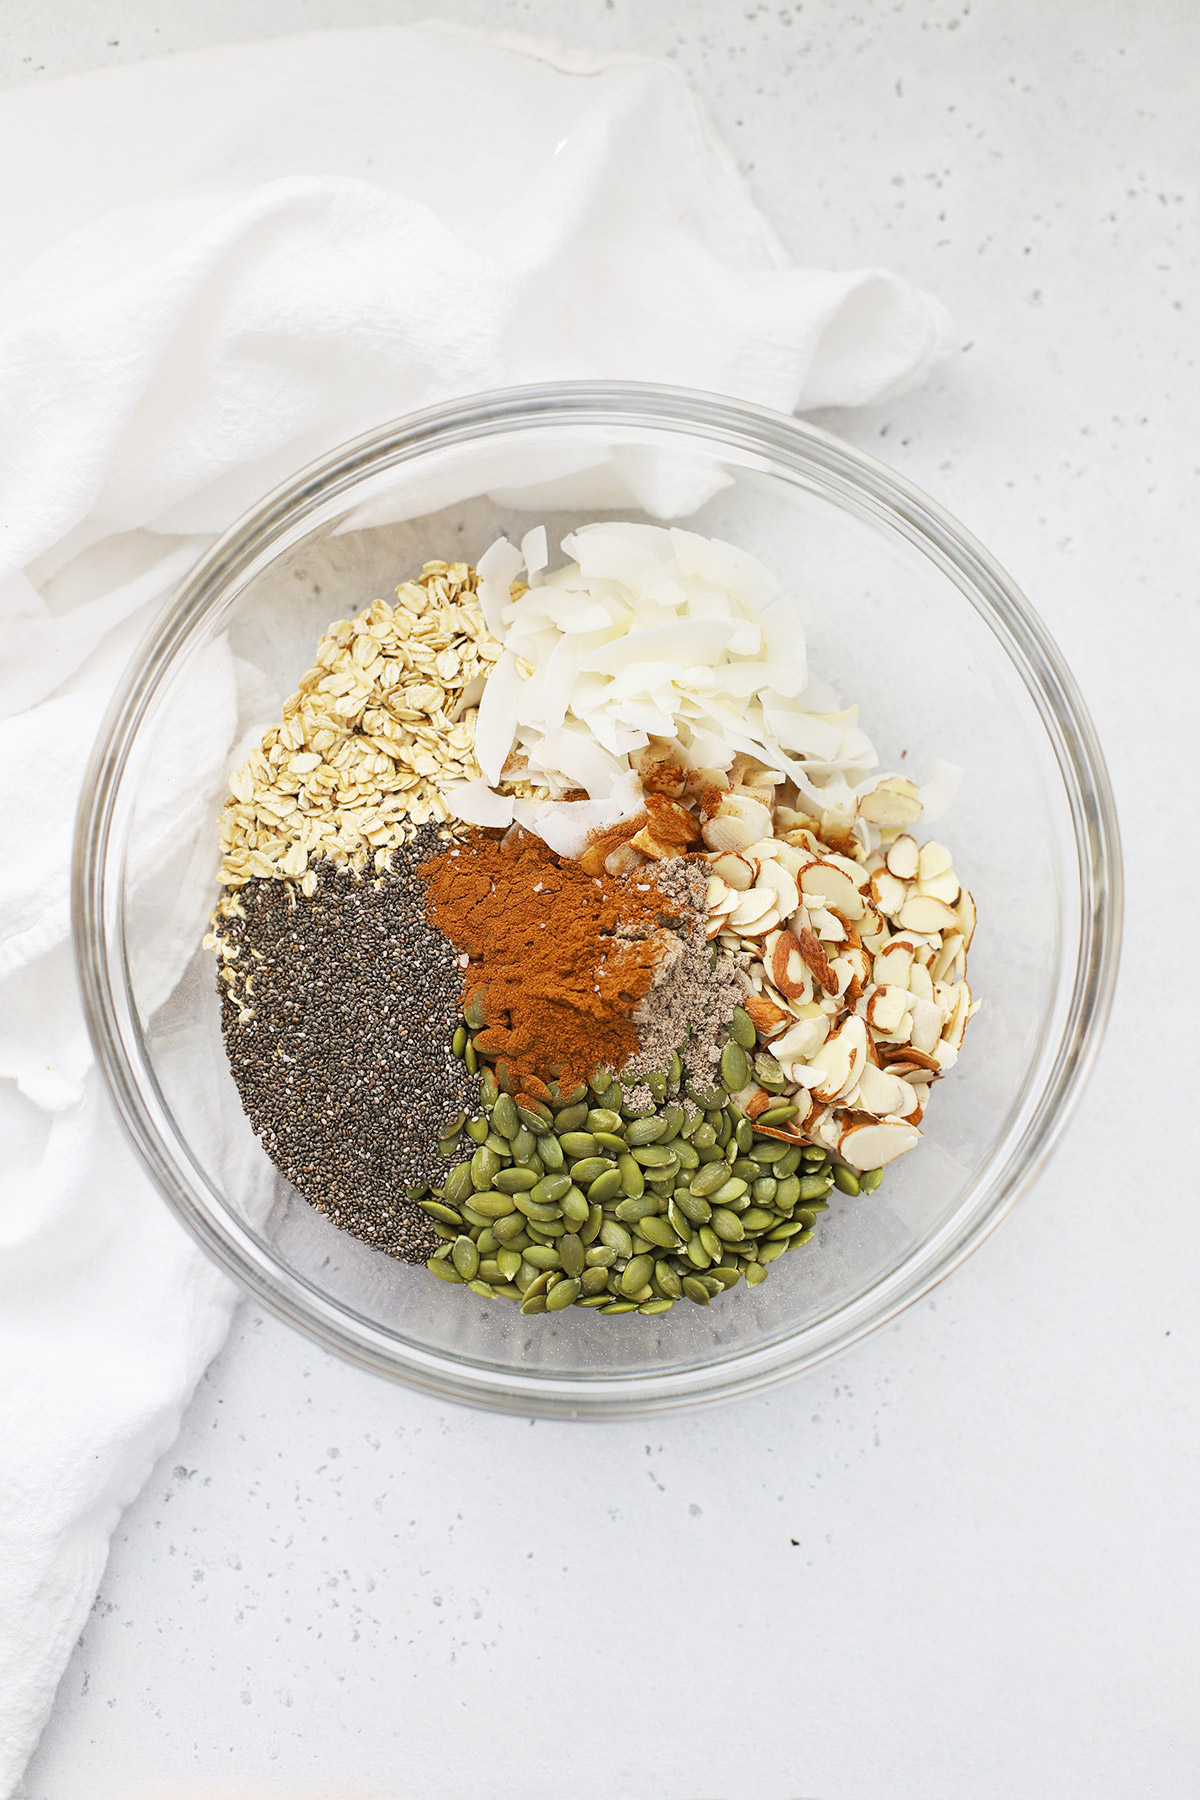 Large glass mixing bowl of ingredients for warm spiced granola